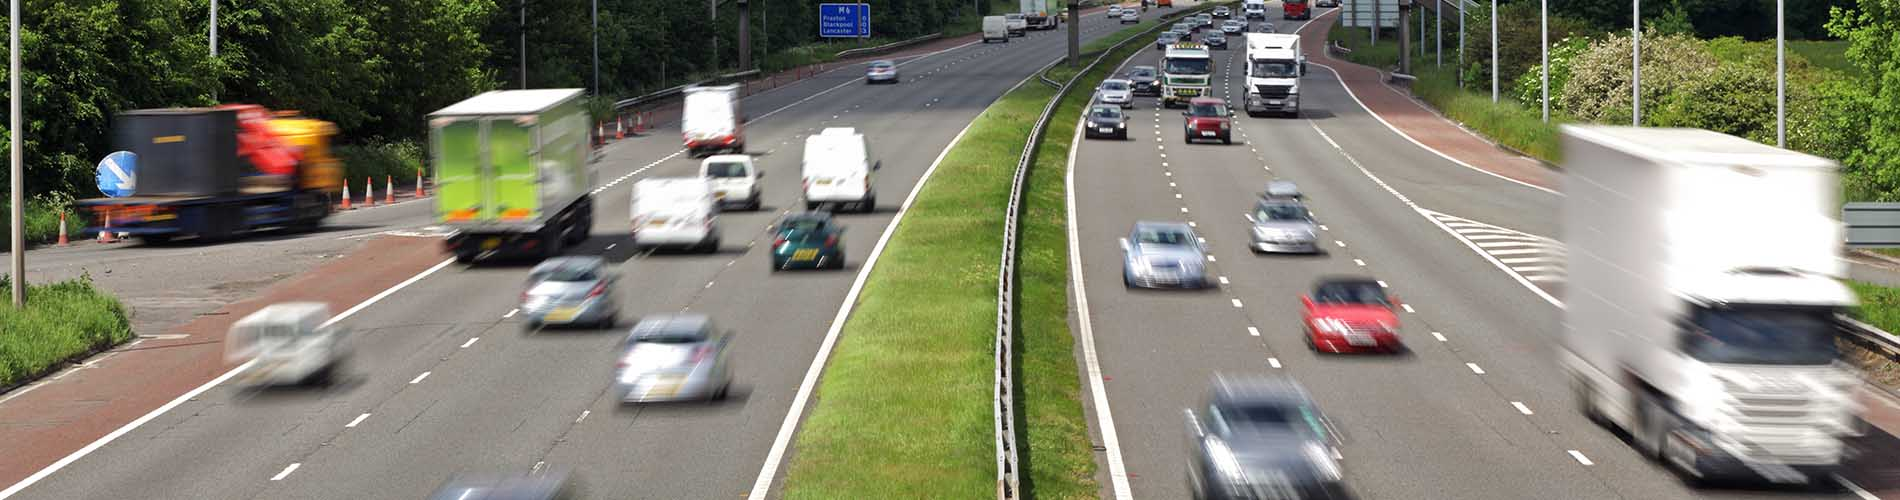 heavy traffic moving at speed on the motorway